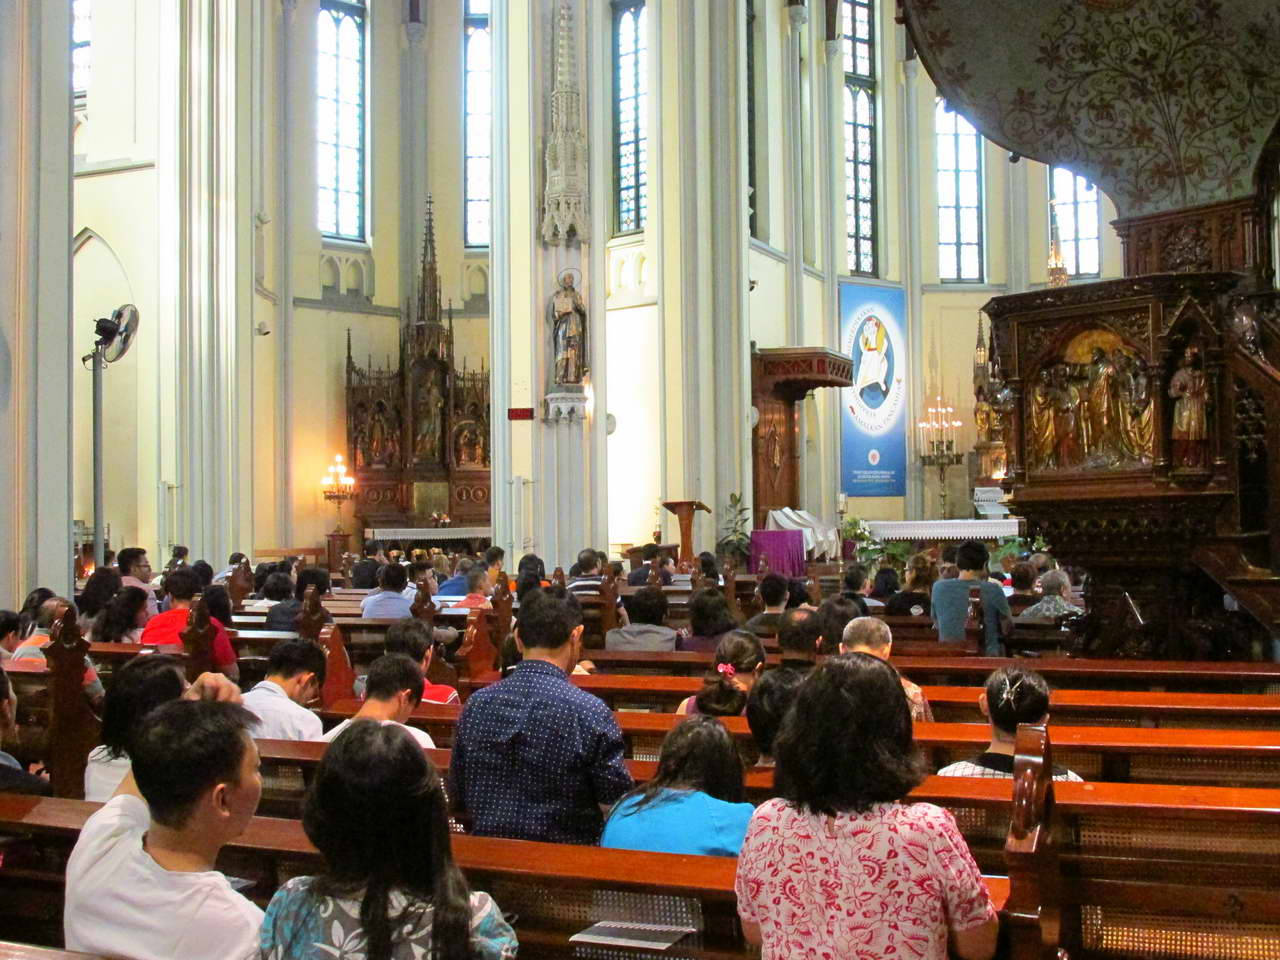 Jakarta_Cathedral_2.jpg